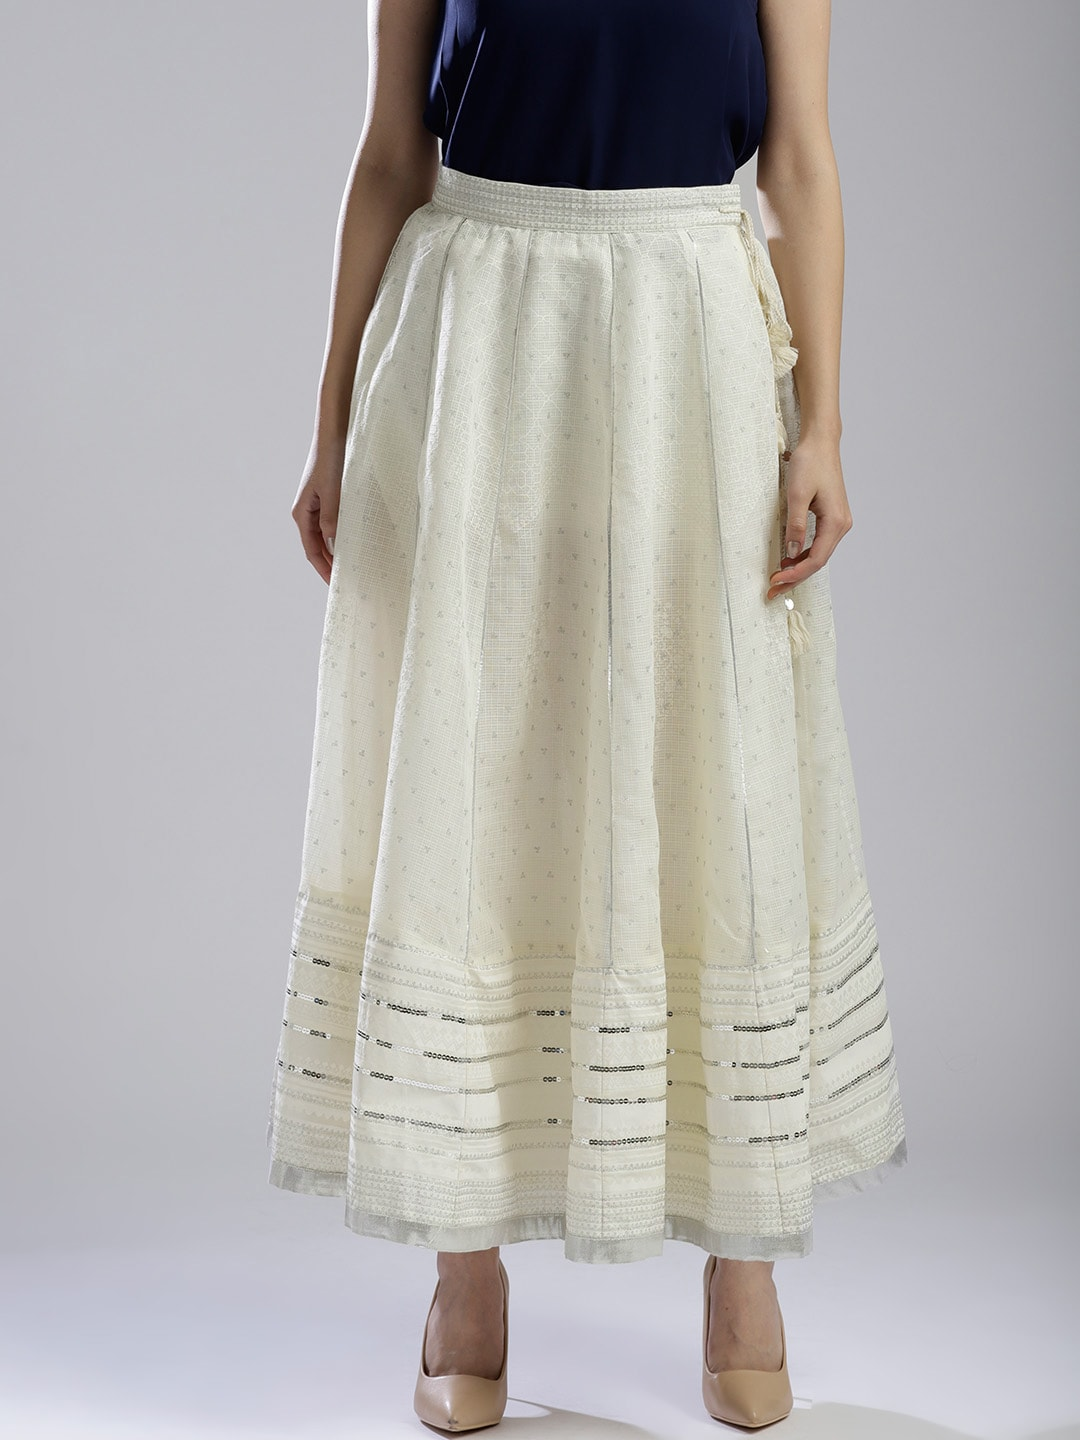 2204f53186 Off White Skirts - Buy Off White Skirts online in India